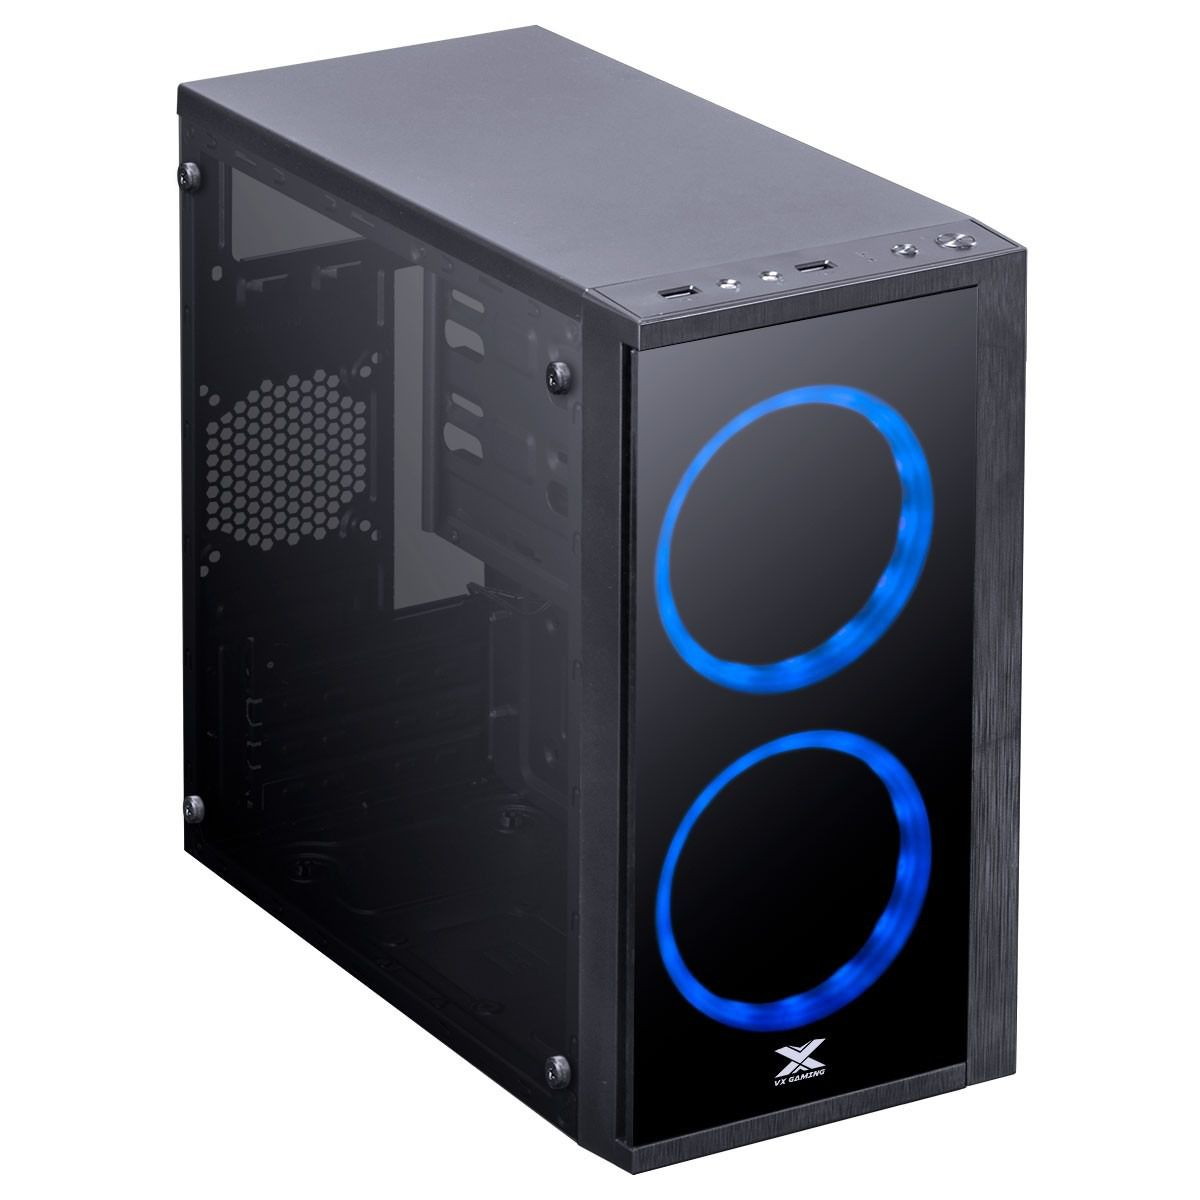 Gabinete Gamer Vx Gaming Aries Lateral Acrílica - Led Azul